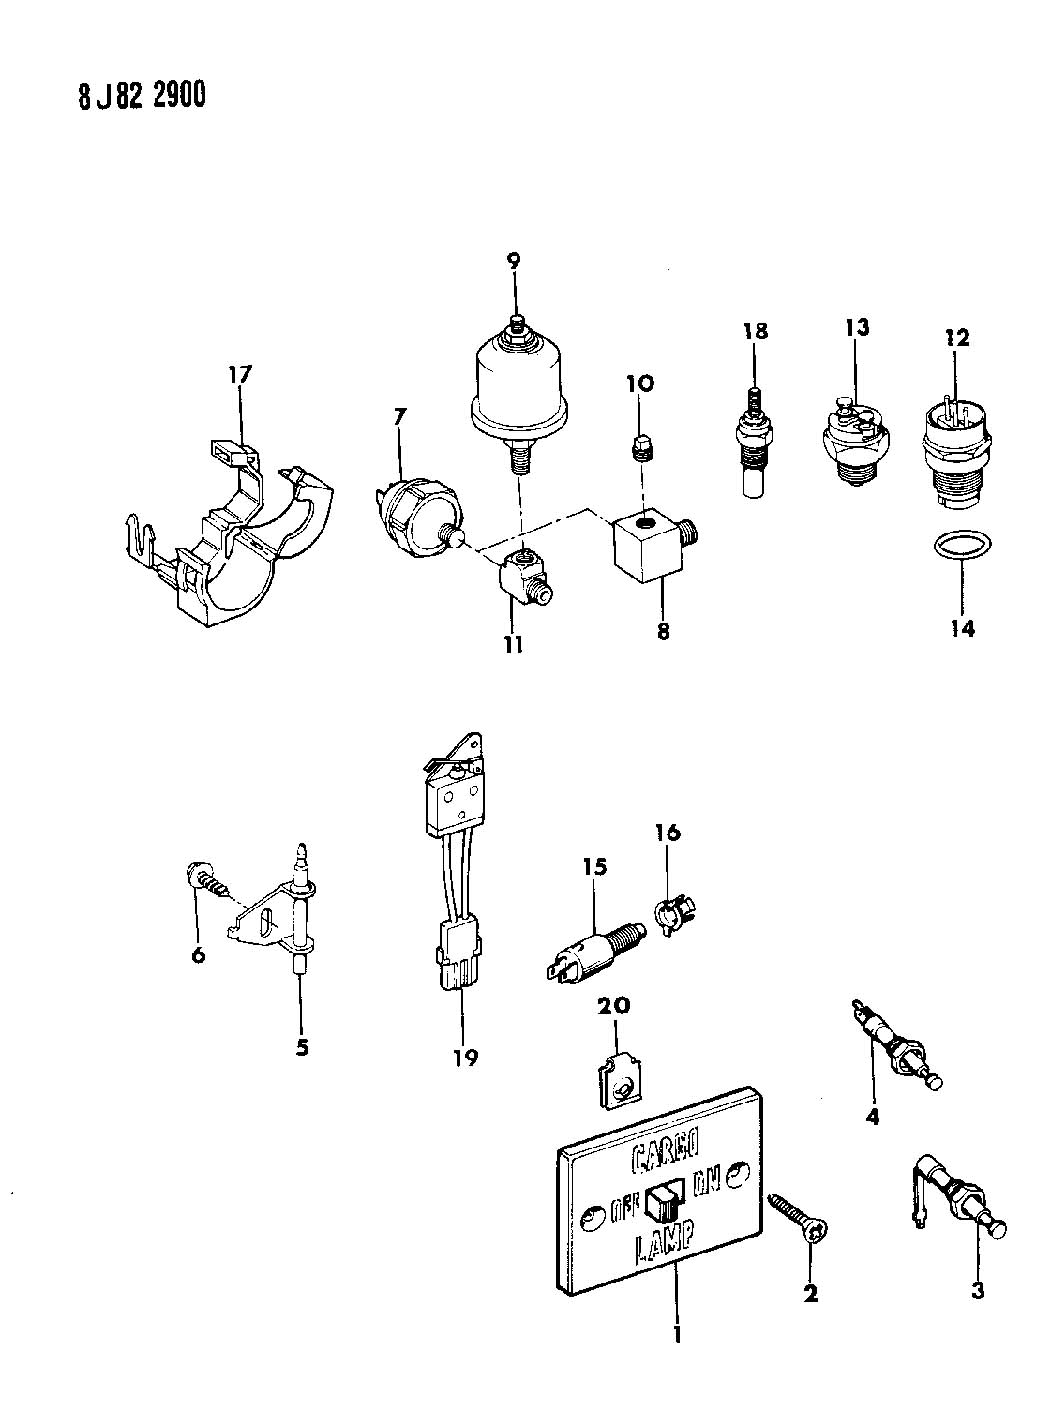 Jeep Comanche Ac Diagram Circuit Wiring And Hub 1990 1988 Cherokee Sender Oil Pressure 89